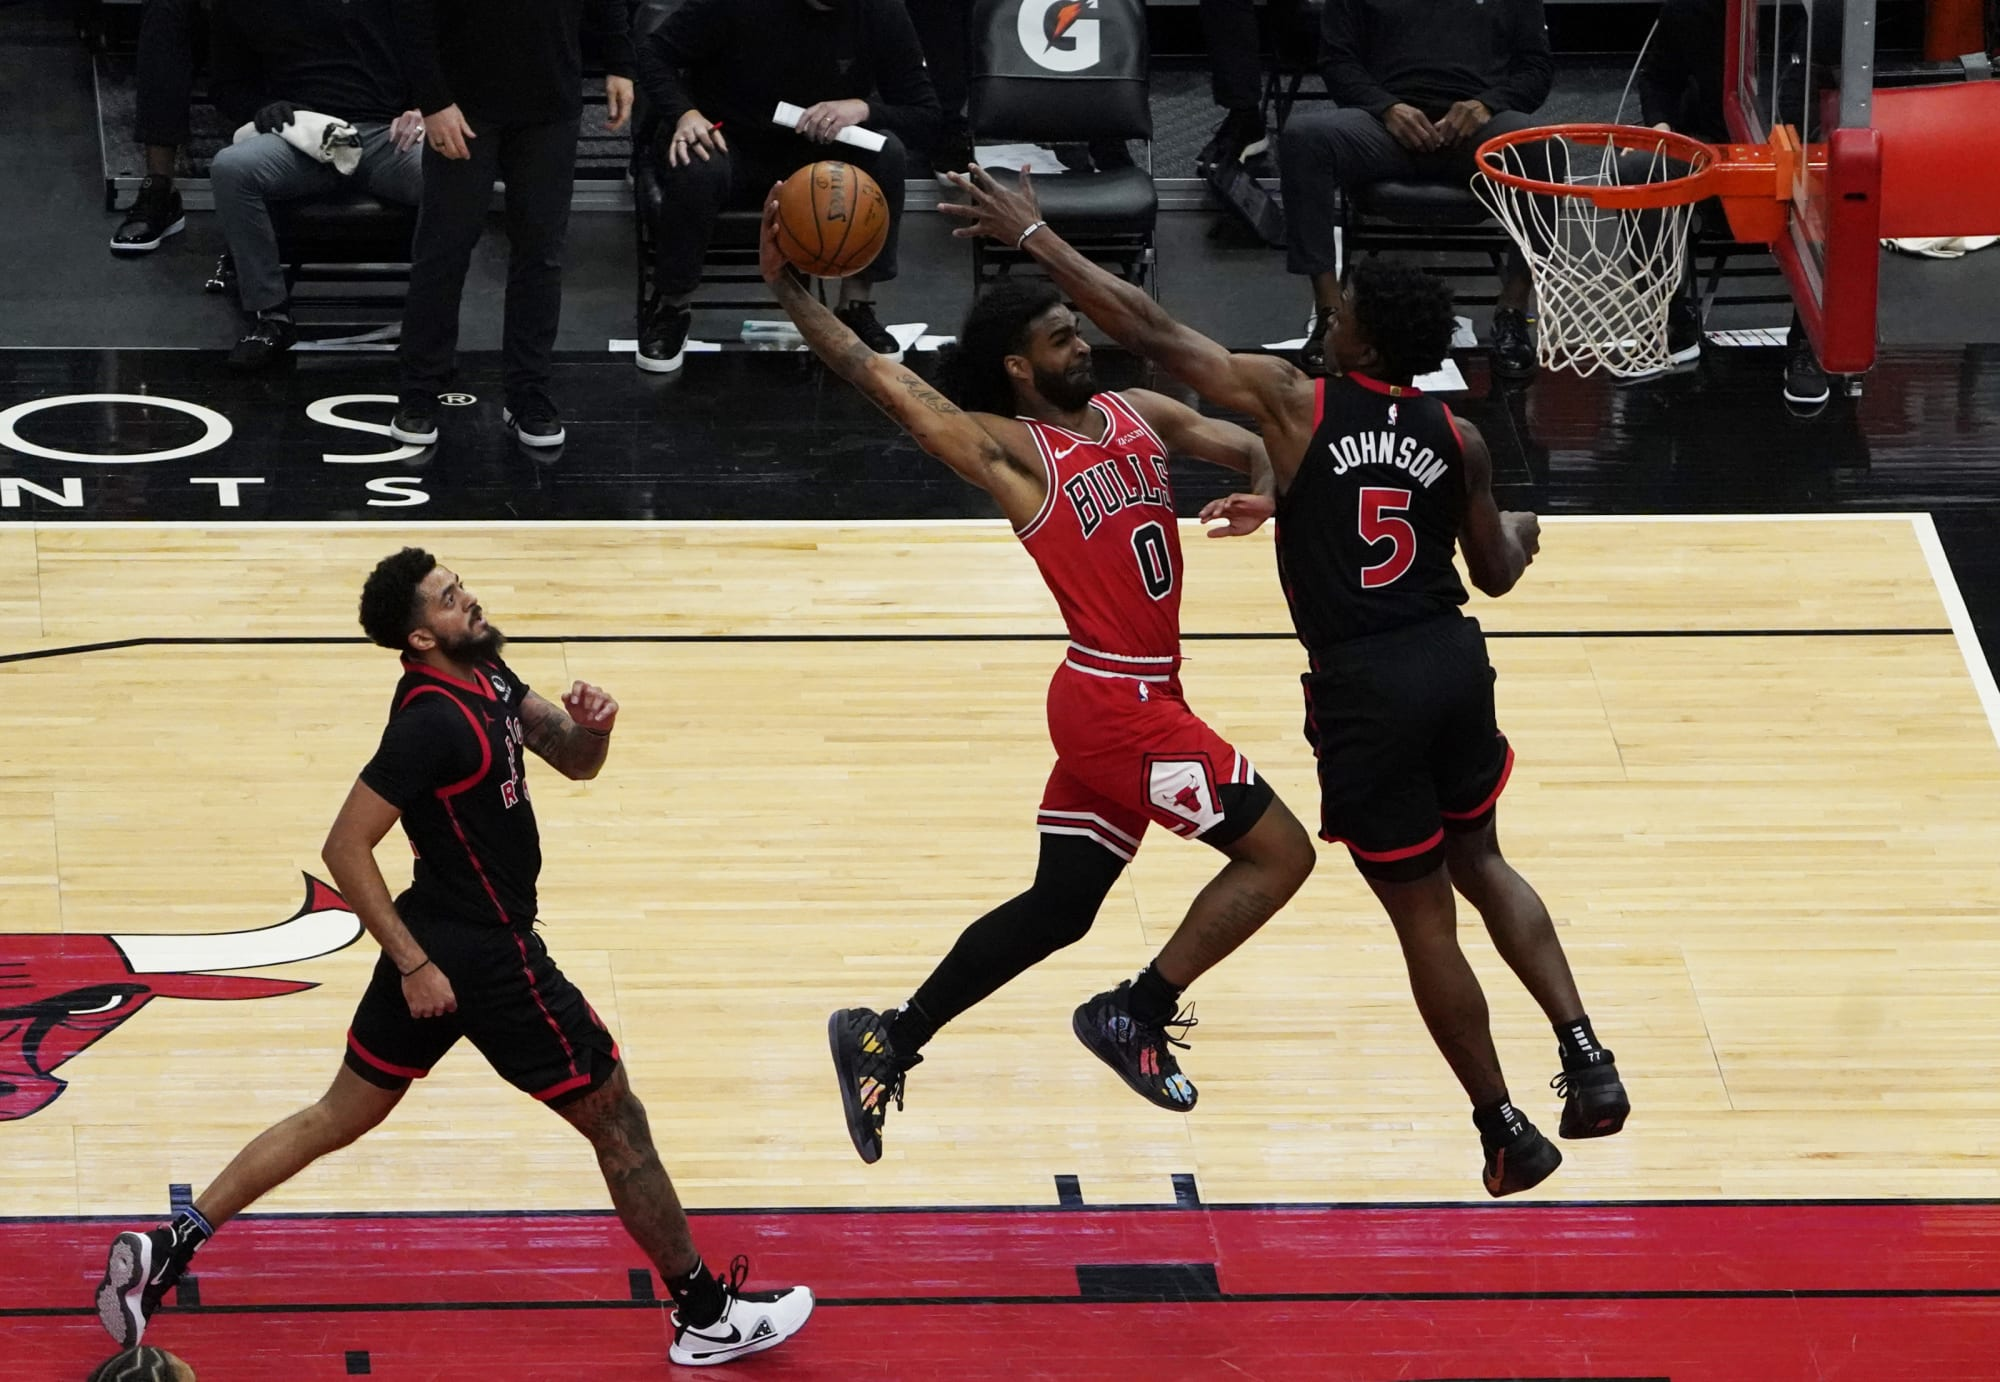 Toronto Raptors: Bulls loss puts Raptors in perfect spot to move up in draft